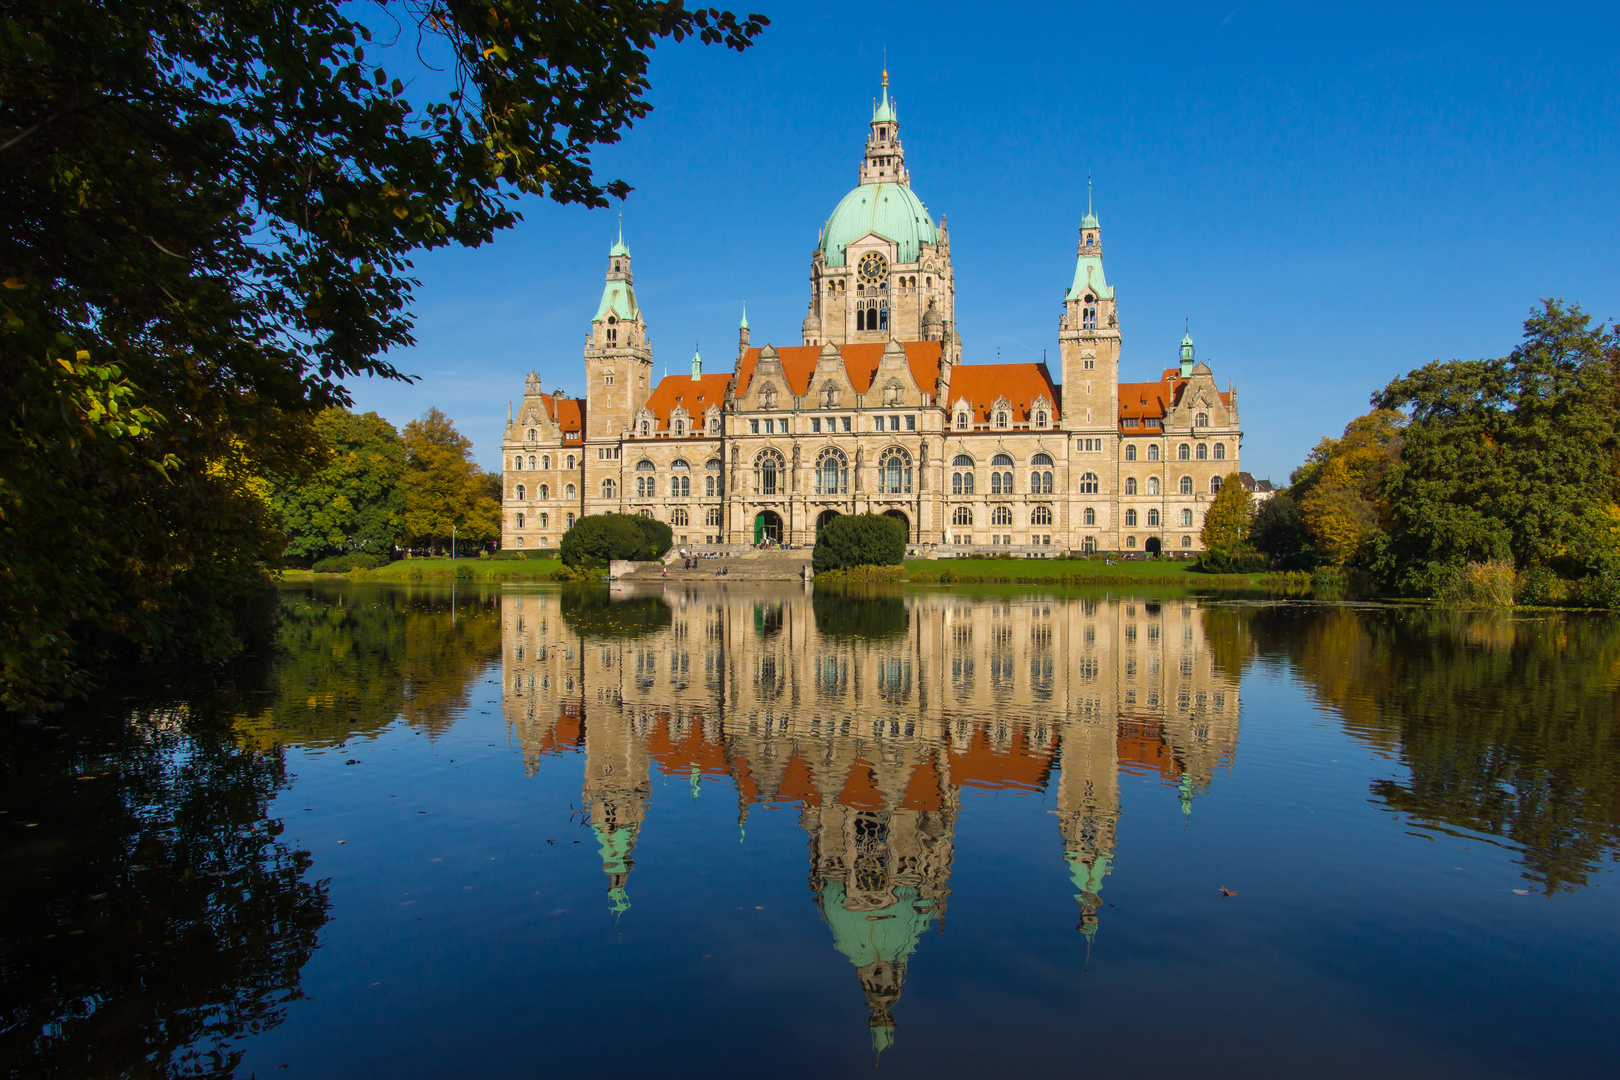 Neues Rathaus - Hannover